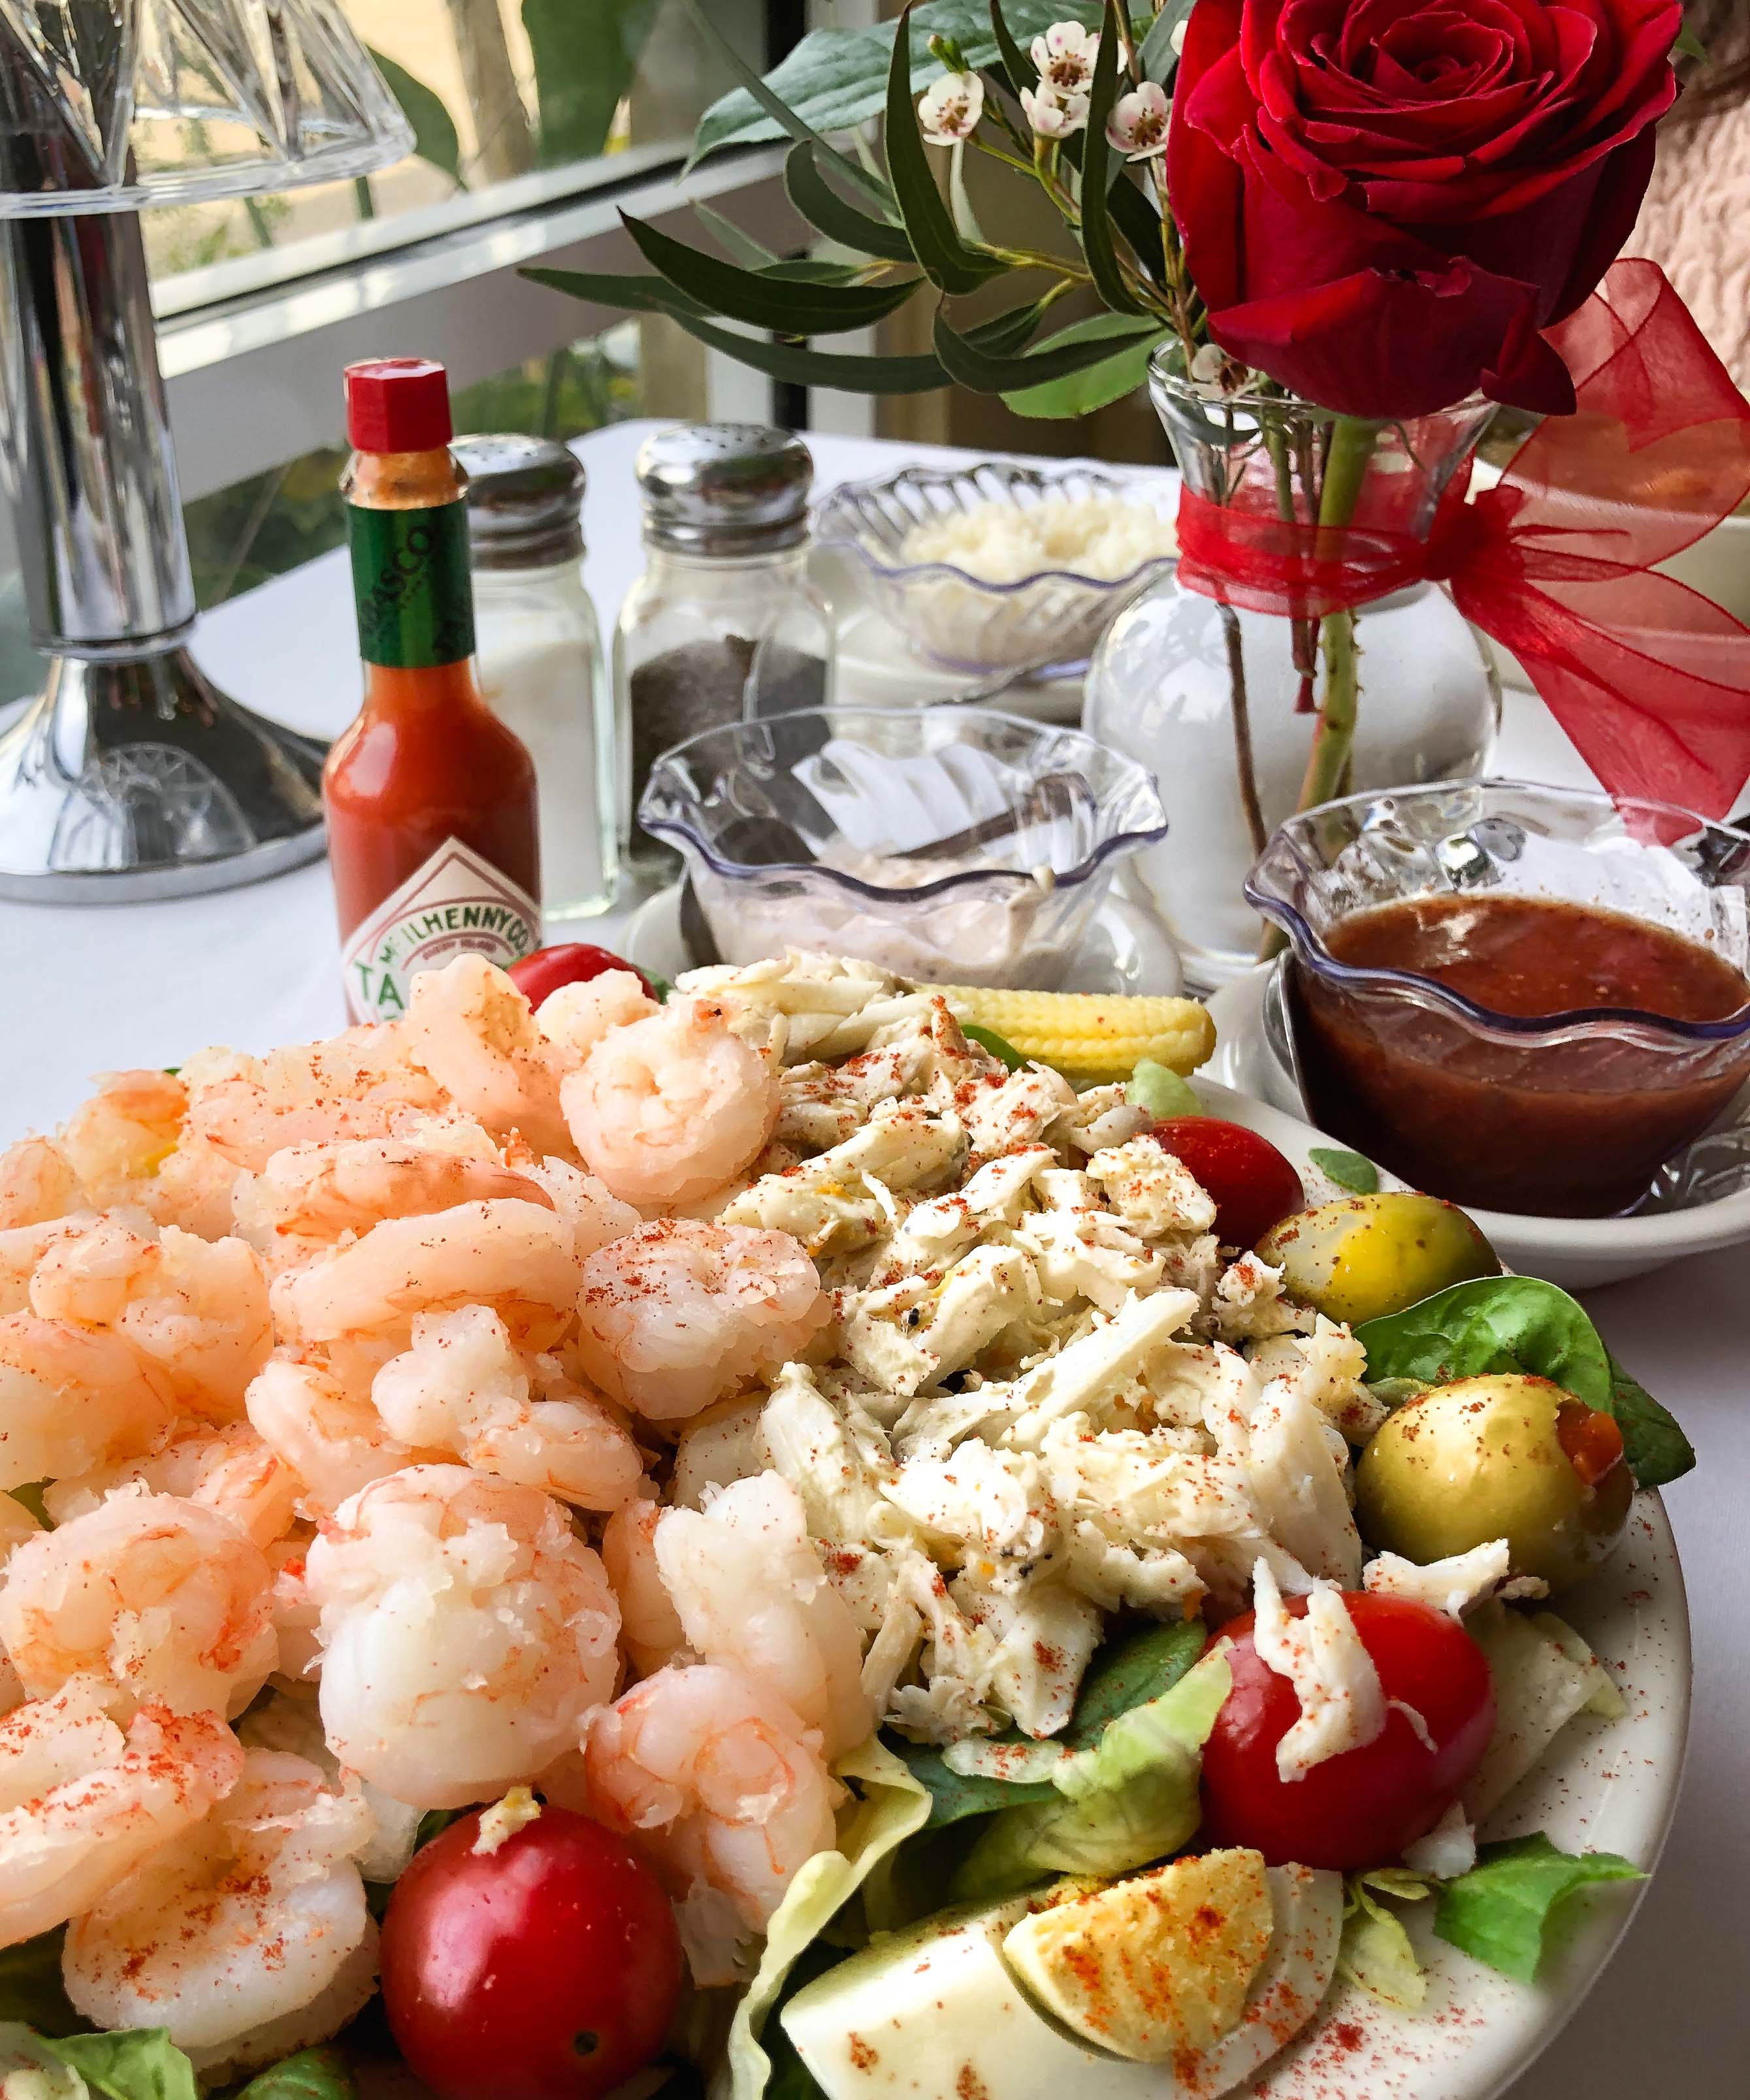 Chilled Seafood Salad with Two Dressings - Acadiana Table